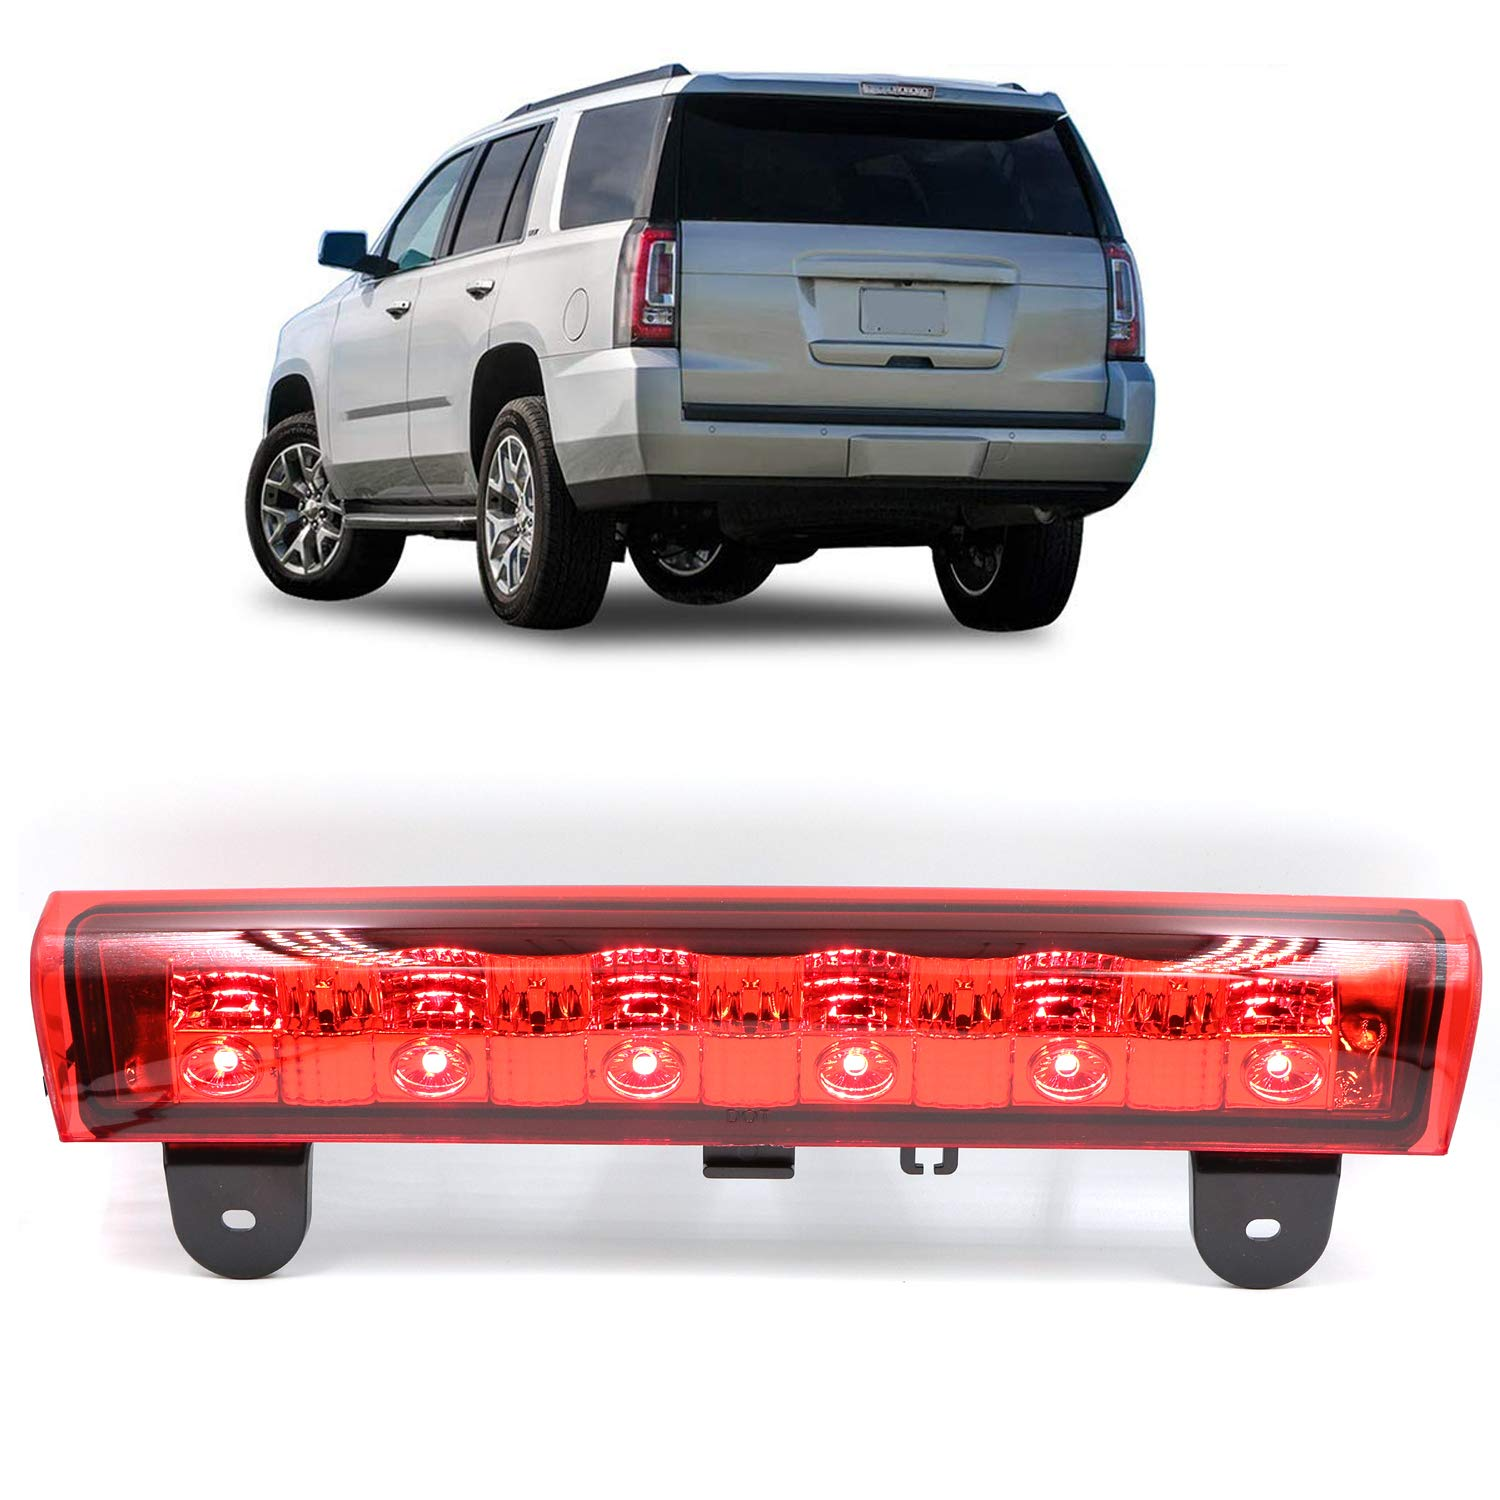 Replacement 3rd High Mount Brake Light LED Brake Light Carge Light for 2000-2006 Chevrolet Suburban 1500/2500 2000-2006 Chevy Tahoe GMC Yukon TadaMark